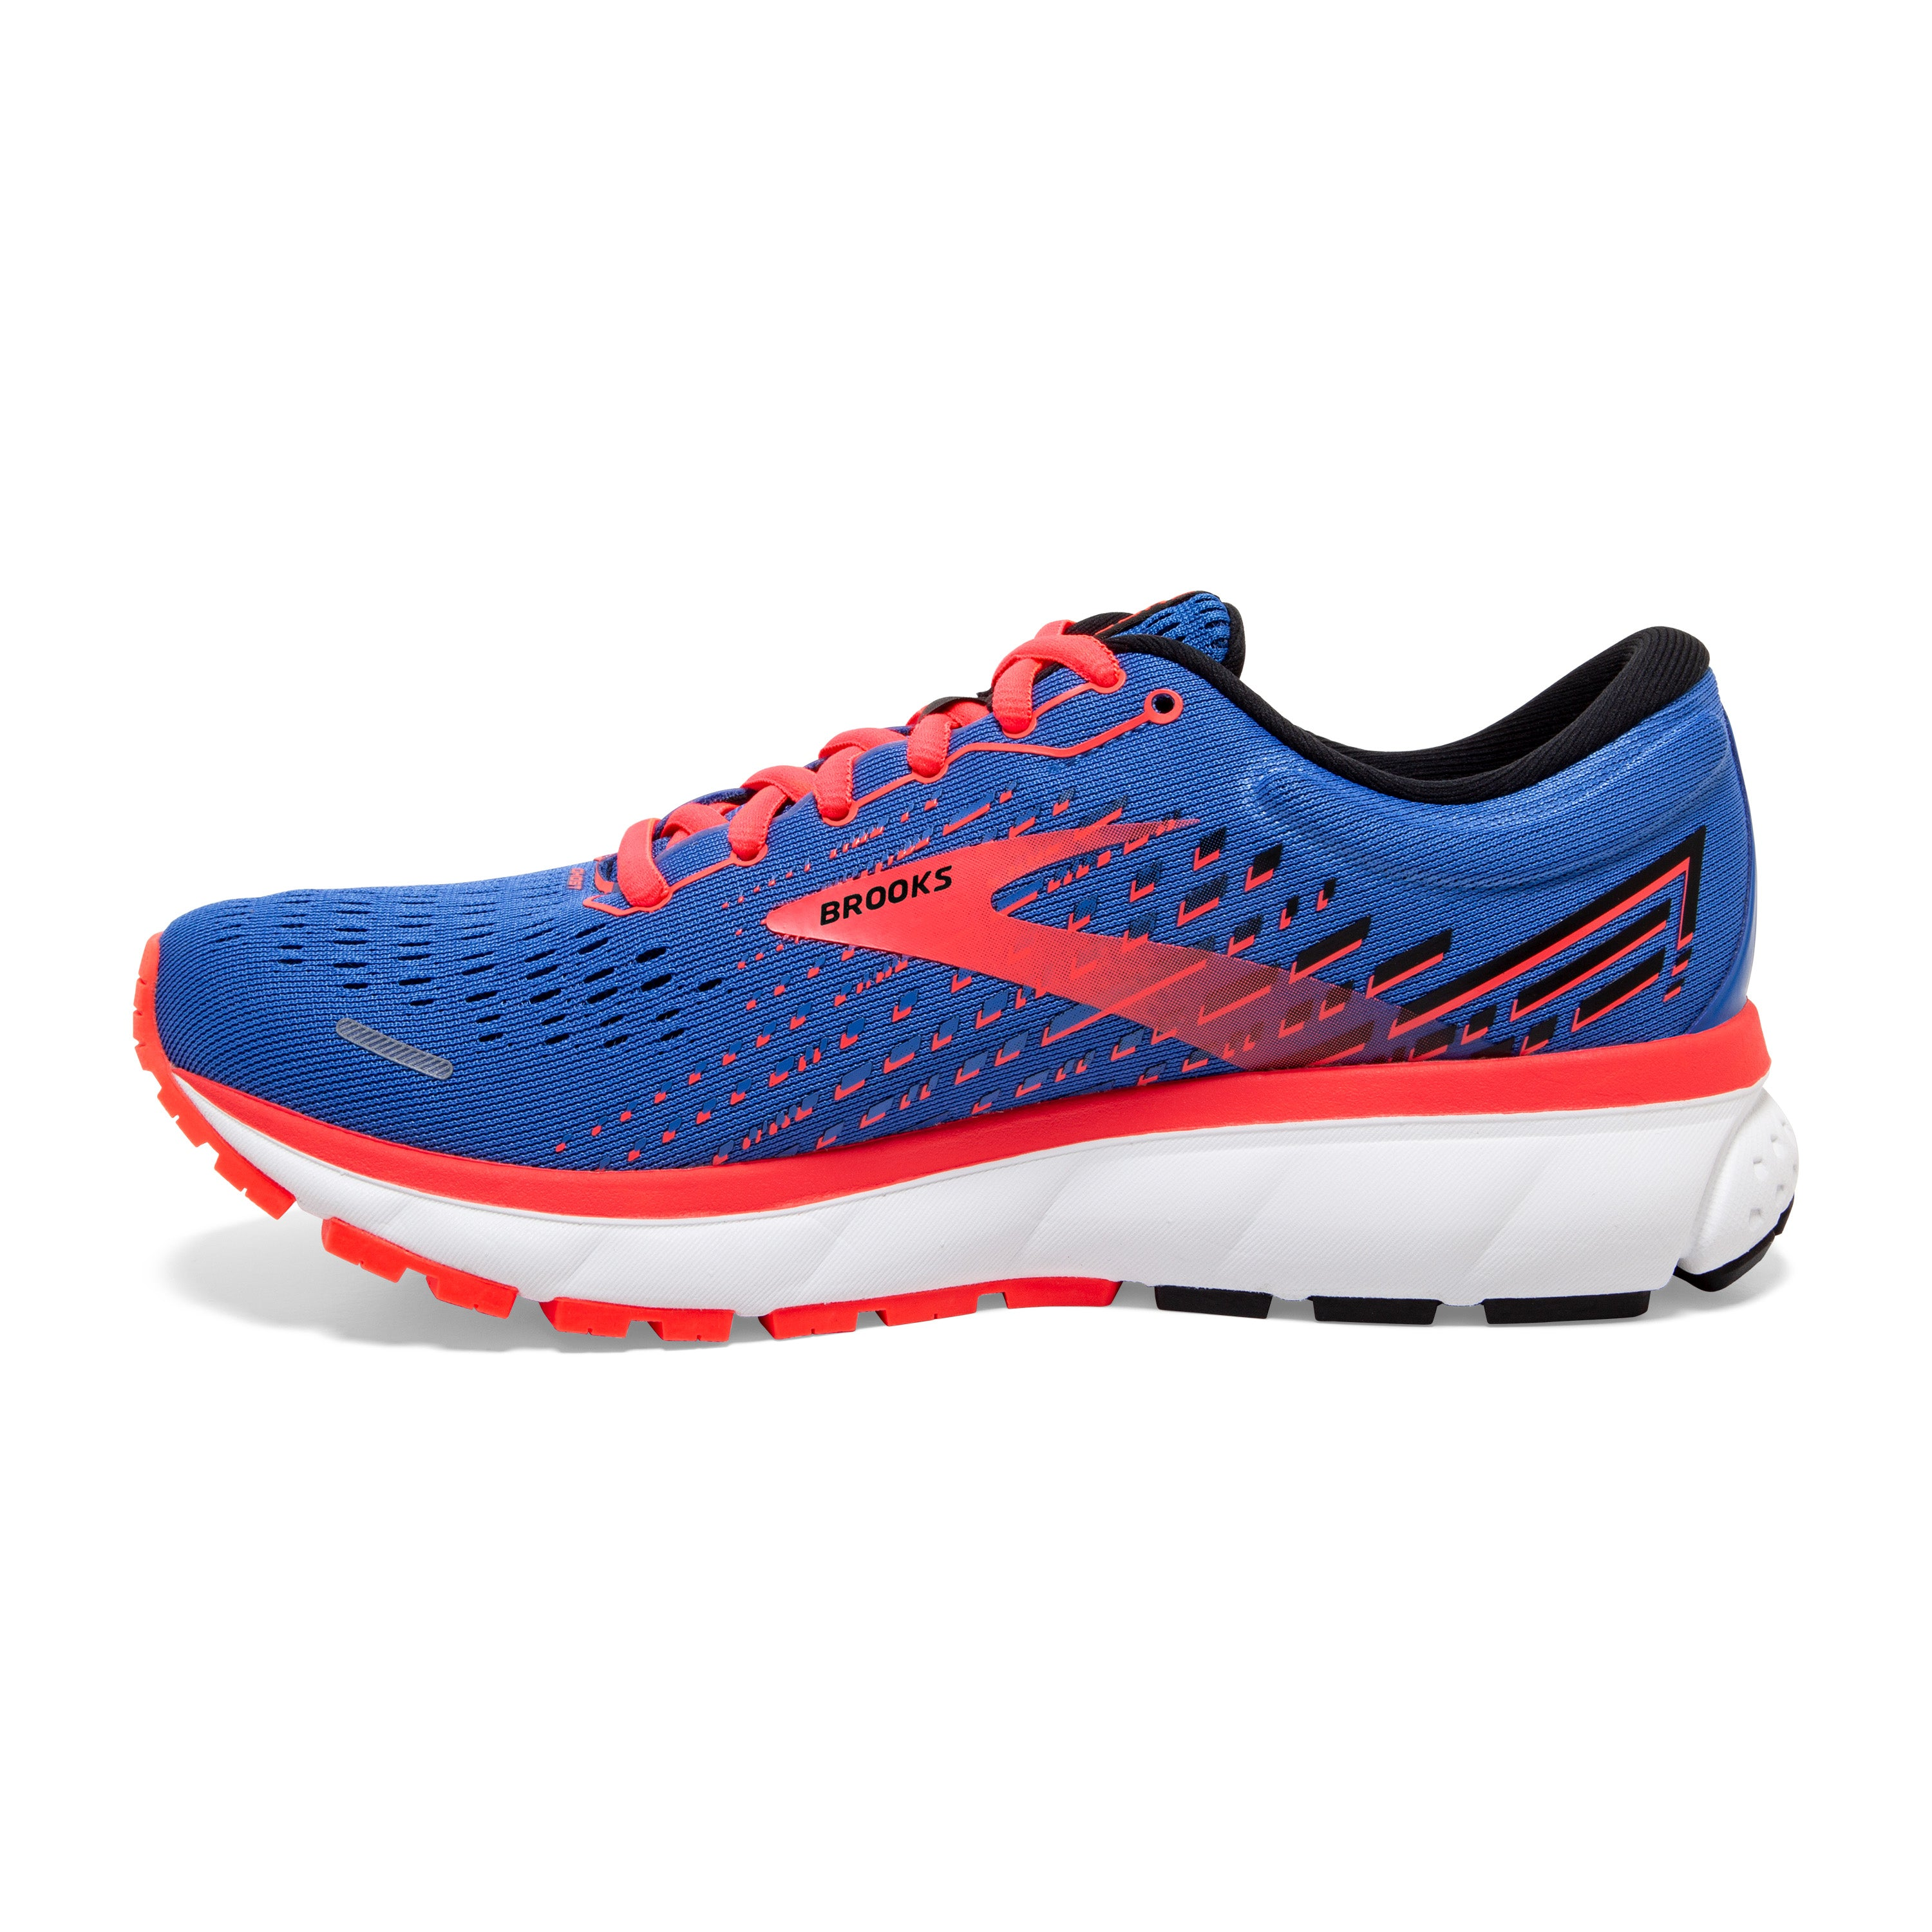 Women's Ghost 13 (424 - blue/coral/white)